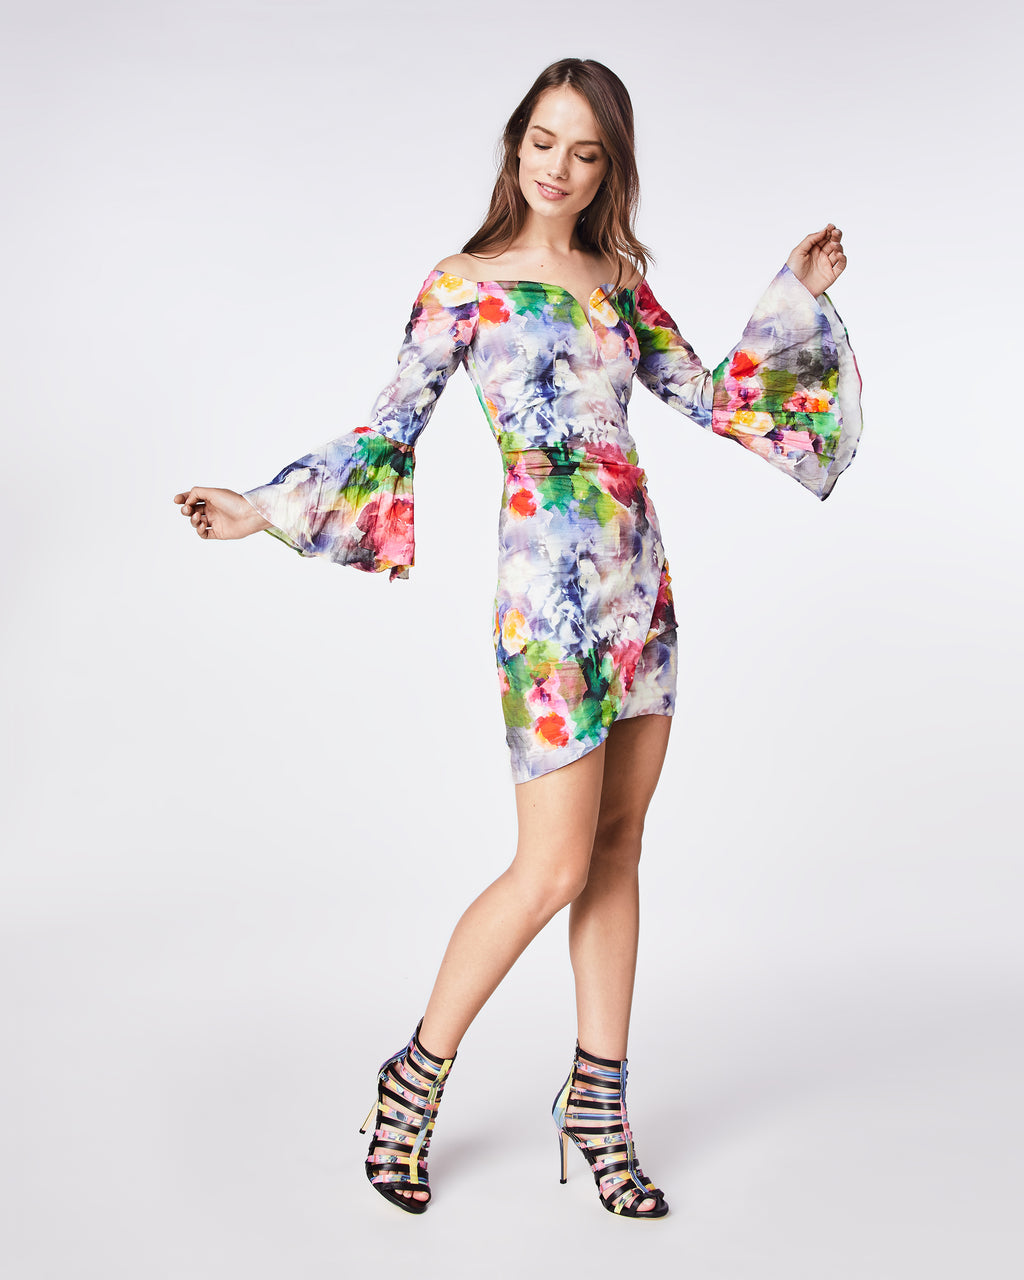 CF10278 - FAINT FLOWERS BELL SLEEVE DRESS - dresses - short - A statement dress with it's bold, floral print. With bell sleeves and asymmetrical skirt, this silhouette is great for an upcoming event or special night out.